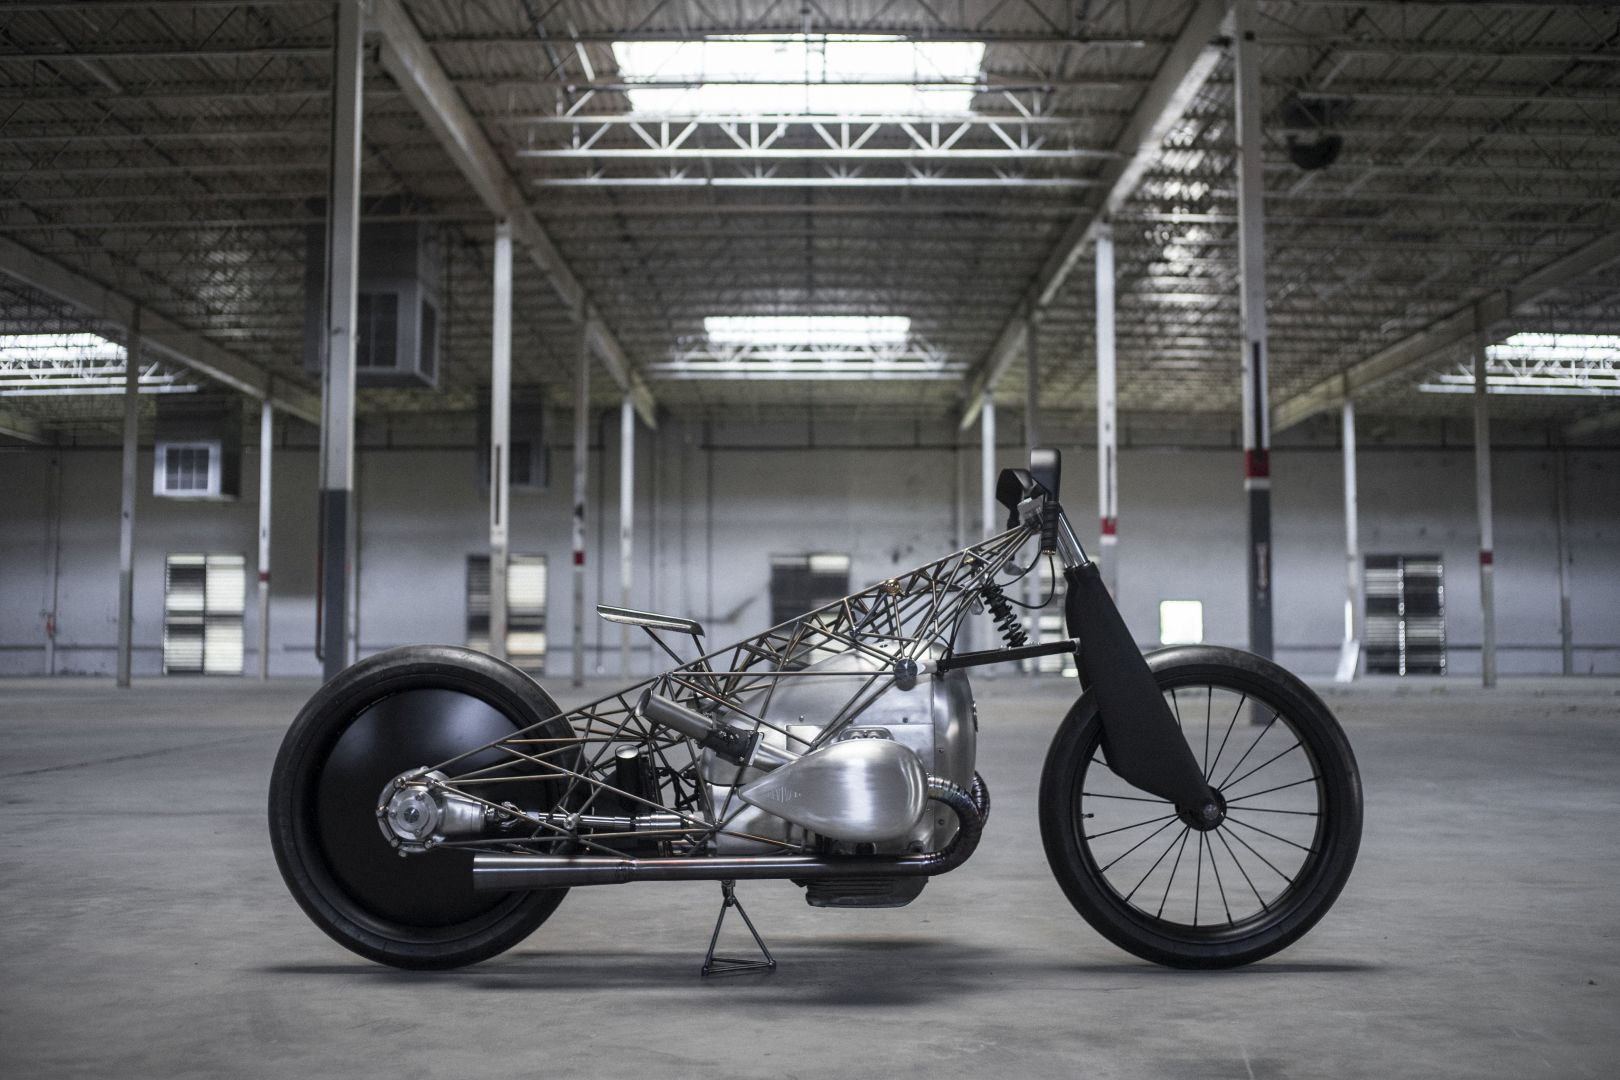 Revival Birdcage Is One Hell of a Custom BMW Bike from Revival Cycles